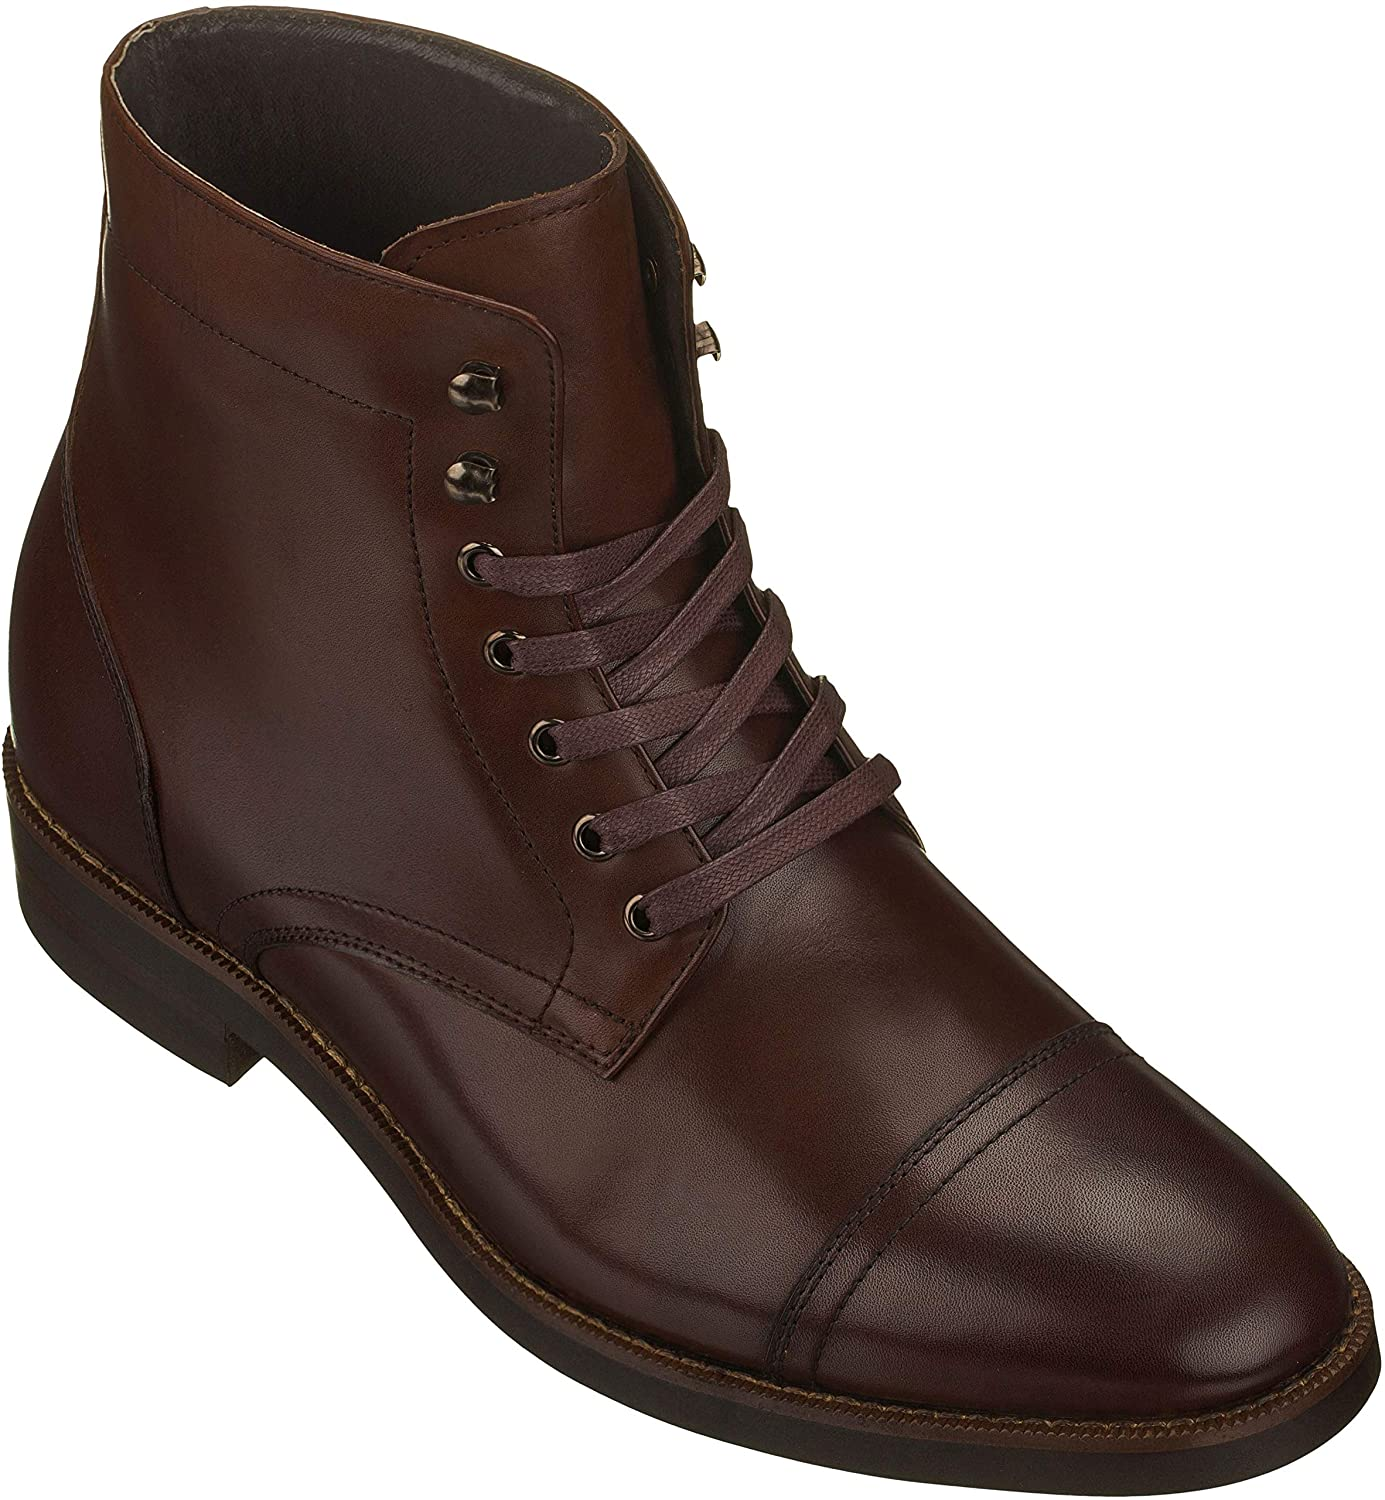 CALTO Mens Invisible Height Increasing Elevator Shoes - Dark Brown Premium Leather Lace-up High-top Boots - 2.8 Inches Taller - S9011